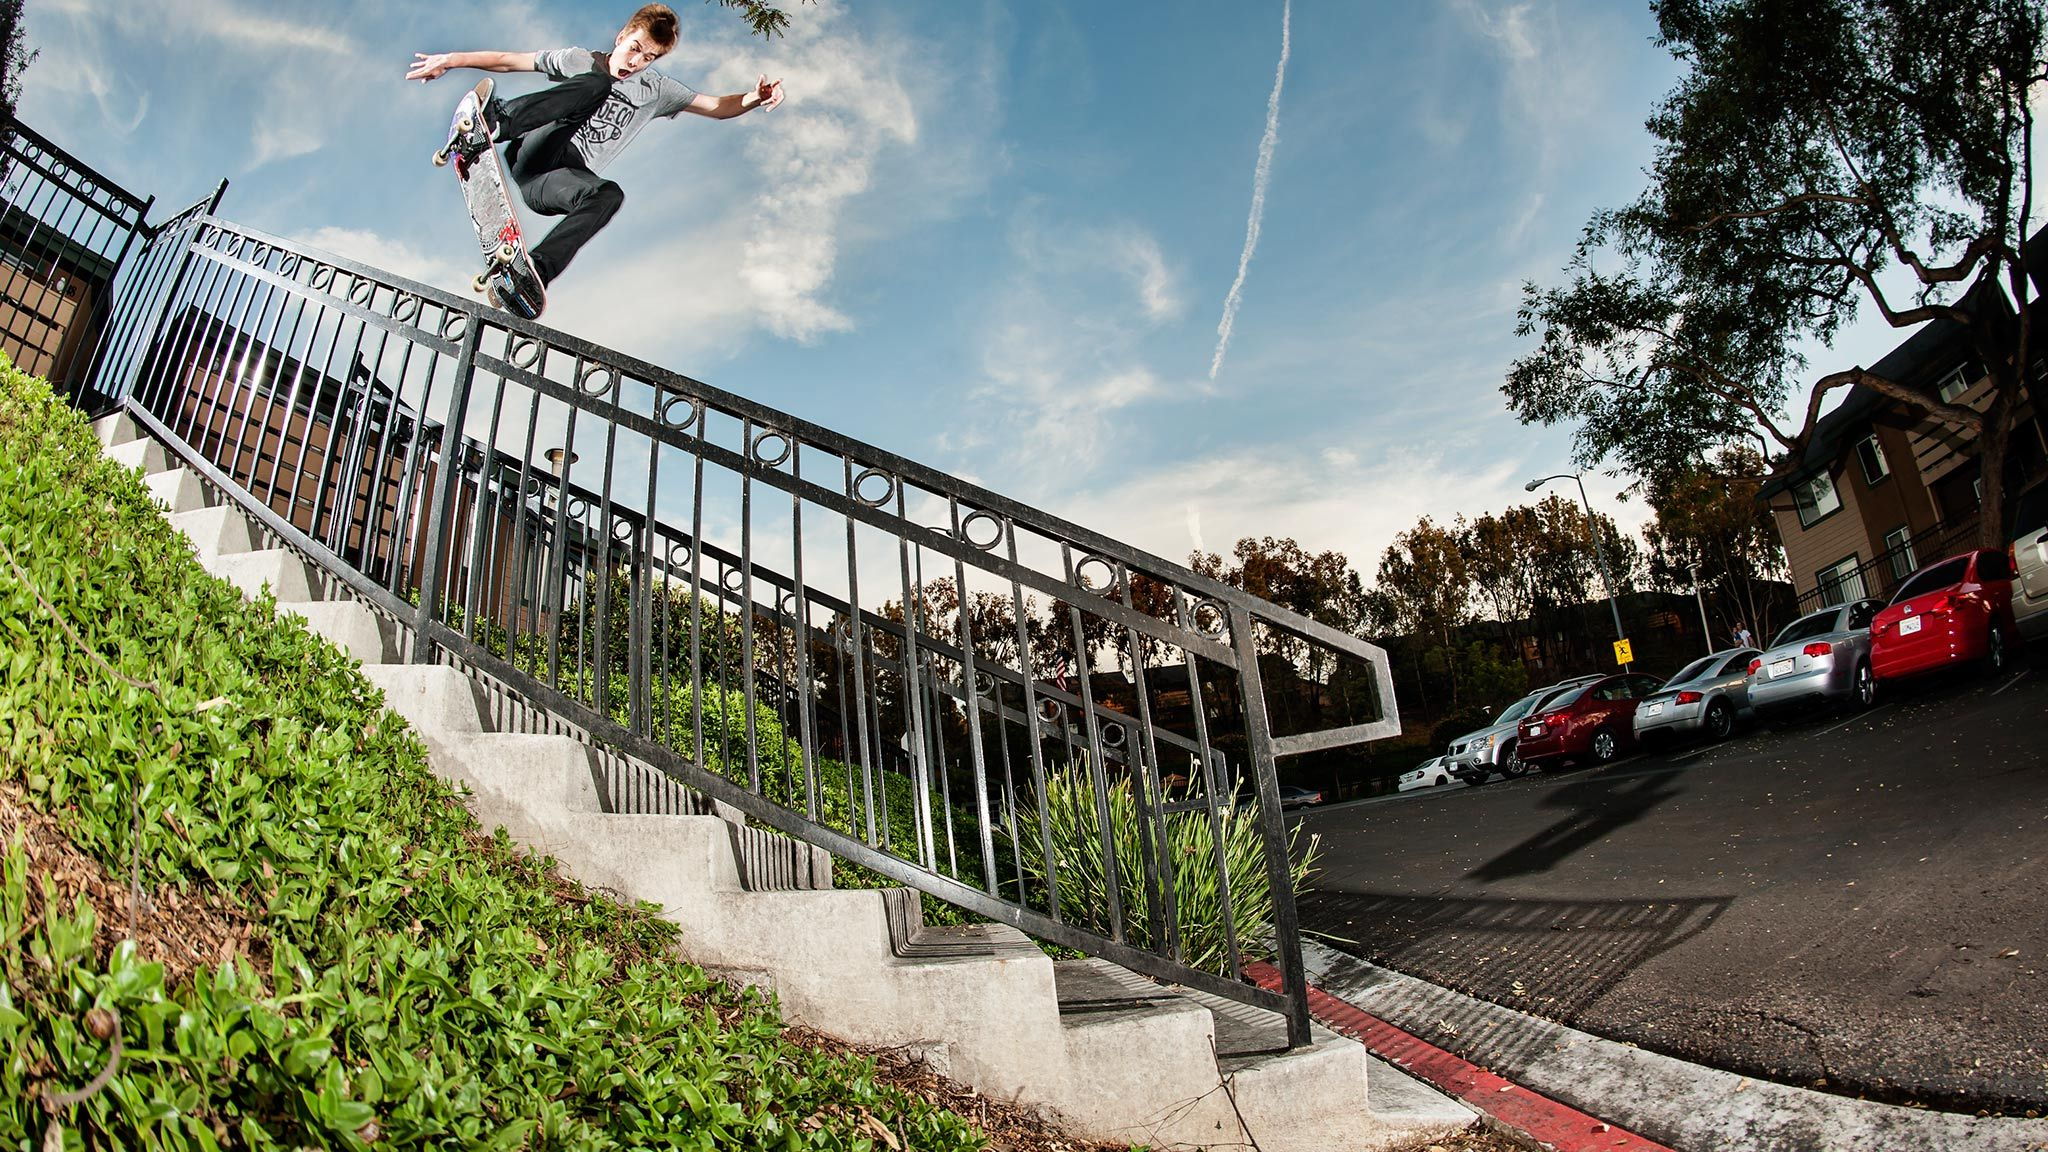 Thrasher Magazine Wallpapers Top Free Thrasher Magazine Backgrounds Wallpaperaccess